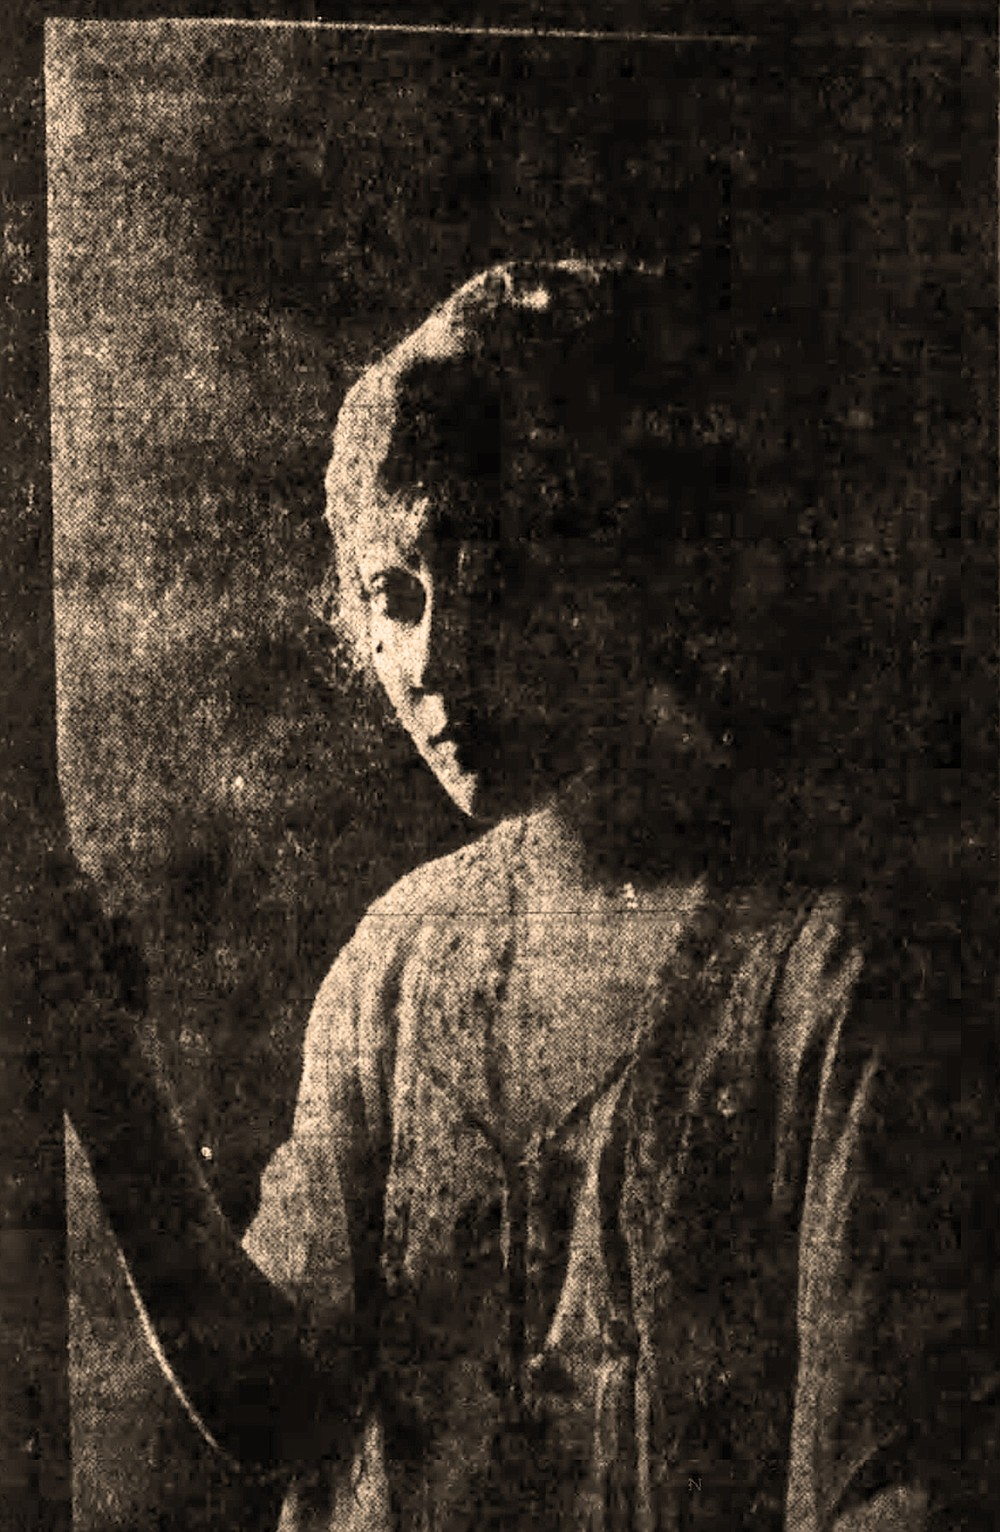 Claire Whitney à partir d'une photo dans le 27 juin 1920, Arkansas Gazette. (Arkansas Democrat-Gazette)